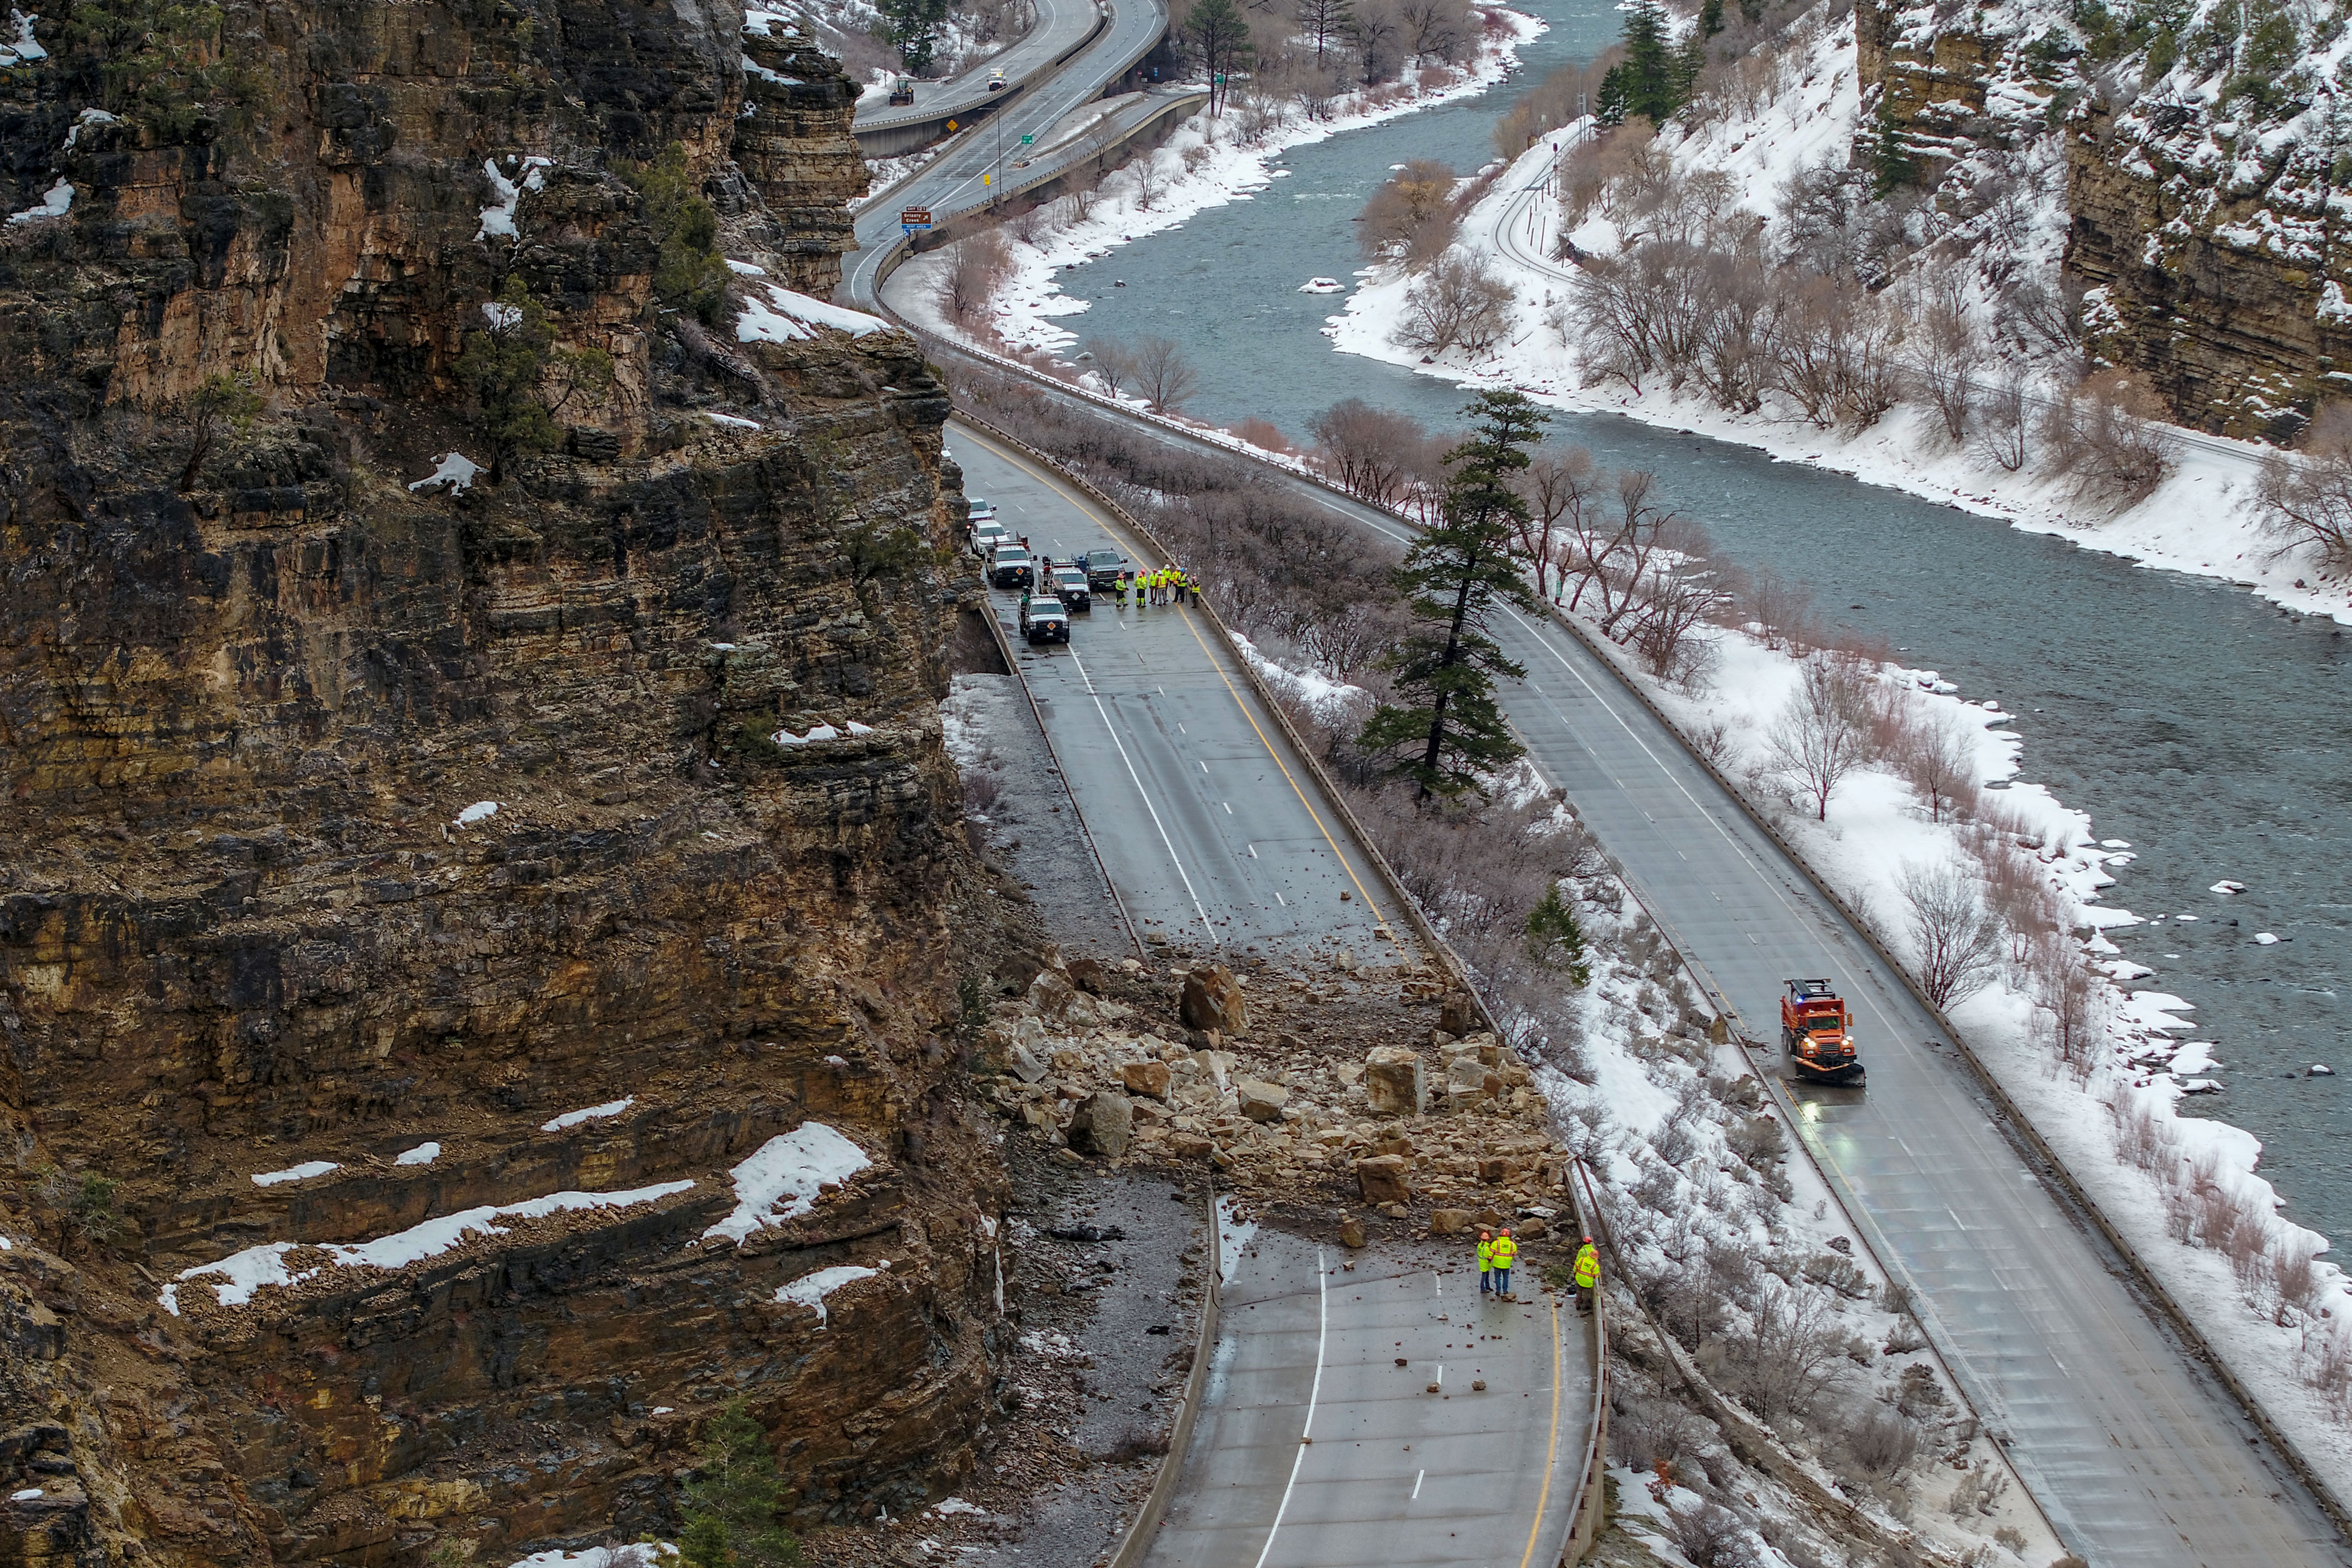 <p>A higher up view of the rock slide that closed I-70 in Glenwood Canyon for a substantial part of Tuesday, Feb. 5, 2019.</p>